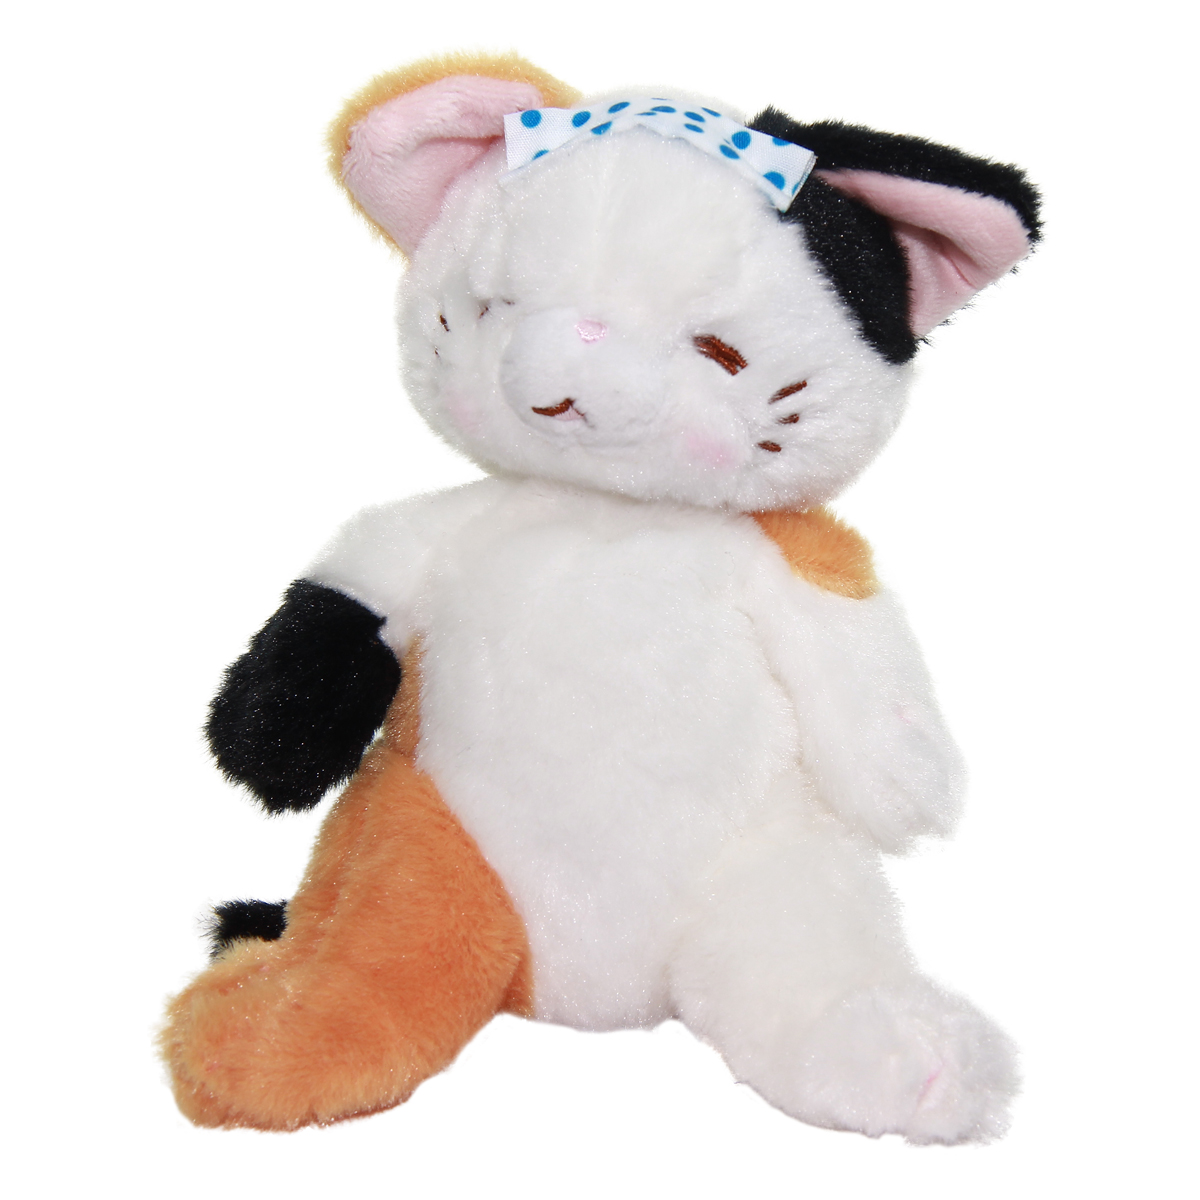 Cat Plush Doll, Hot Springs Collection, Stuffed Animal Toy, White Mix, 6 Inches